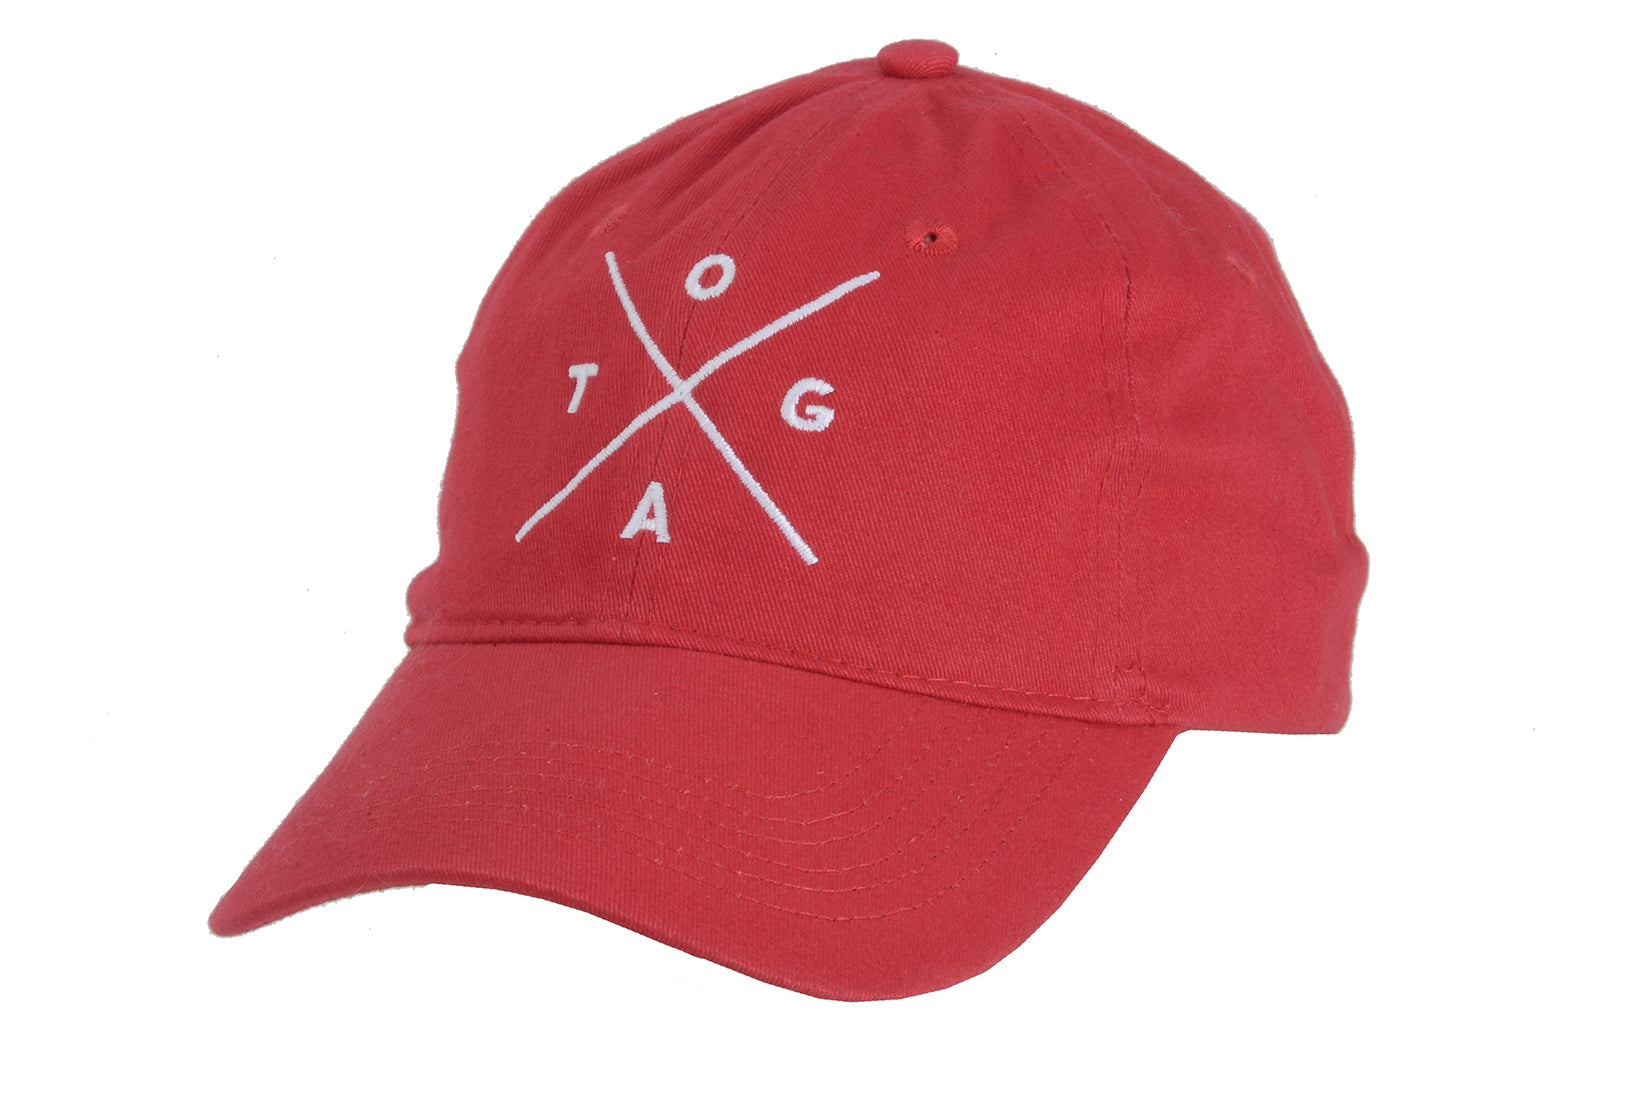 SIGNATURE BASEBALL HAT